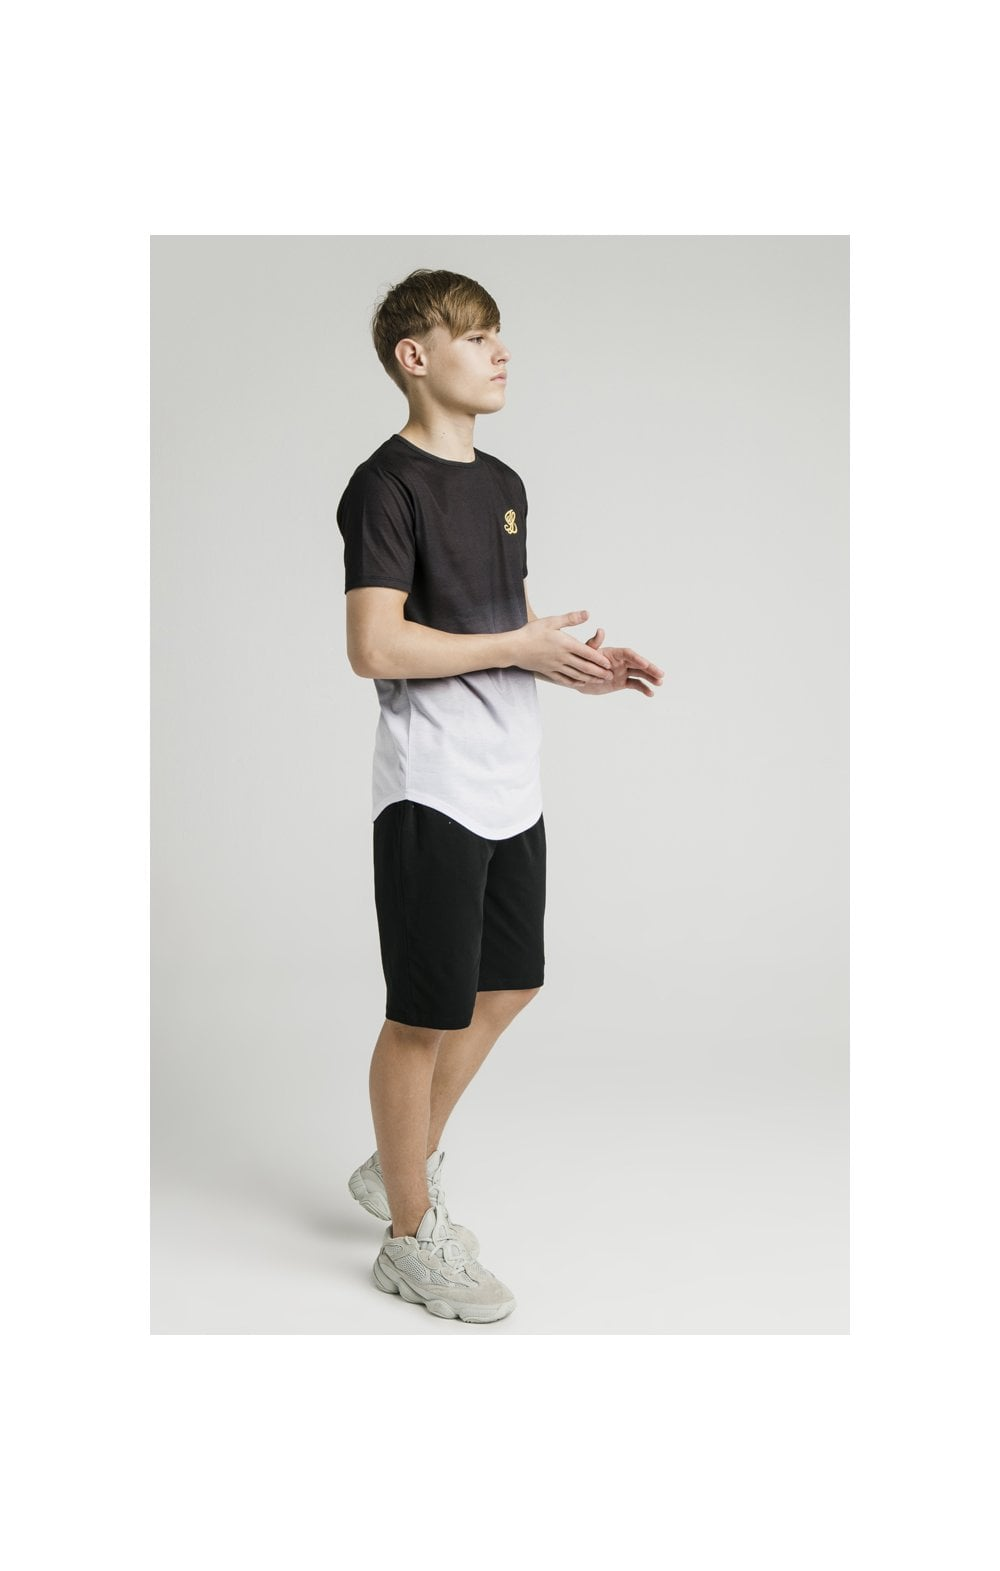 Load image into Gallery viewer, Illusive London S/S Fade Tee - Black & White (5)